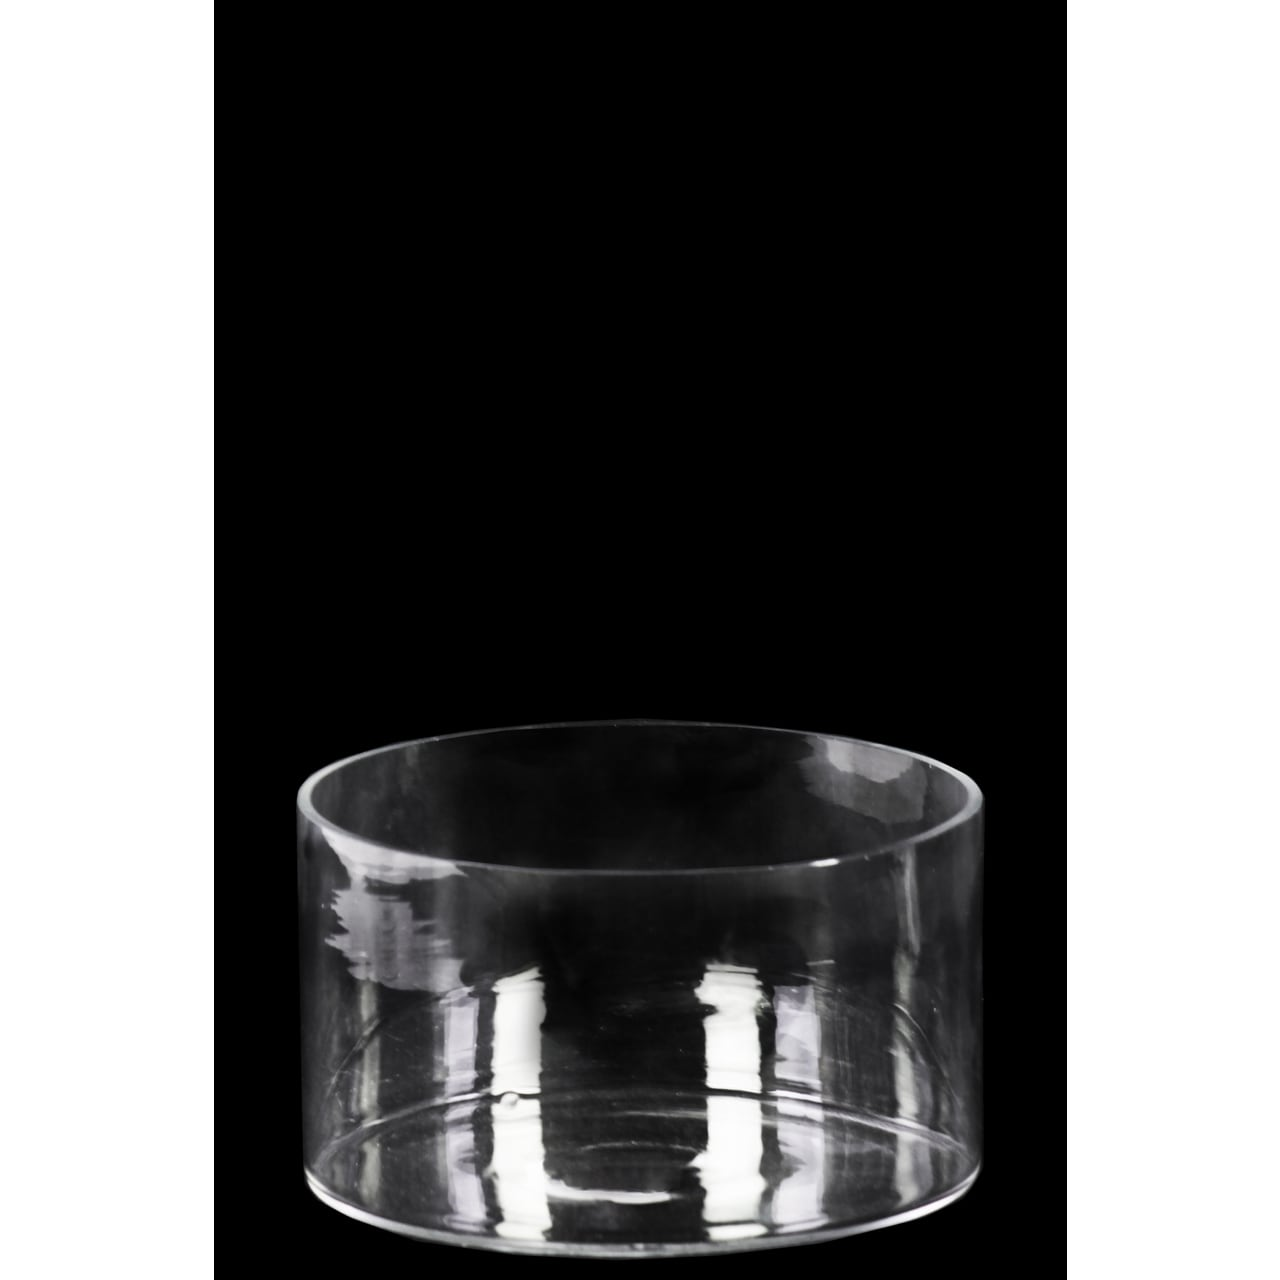 Glass low wide cylinder vase with round mouth clear glass finish glass low wide cylinder vase with round mouth clear glass finish achromatic free shipping on orders over 45 overstock 18545600 reviewsmspy